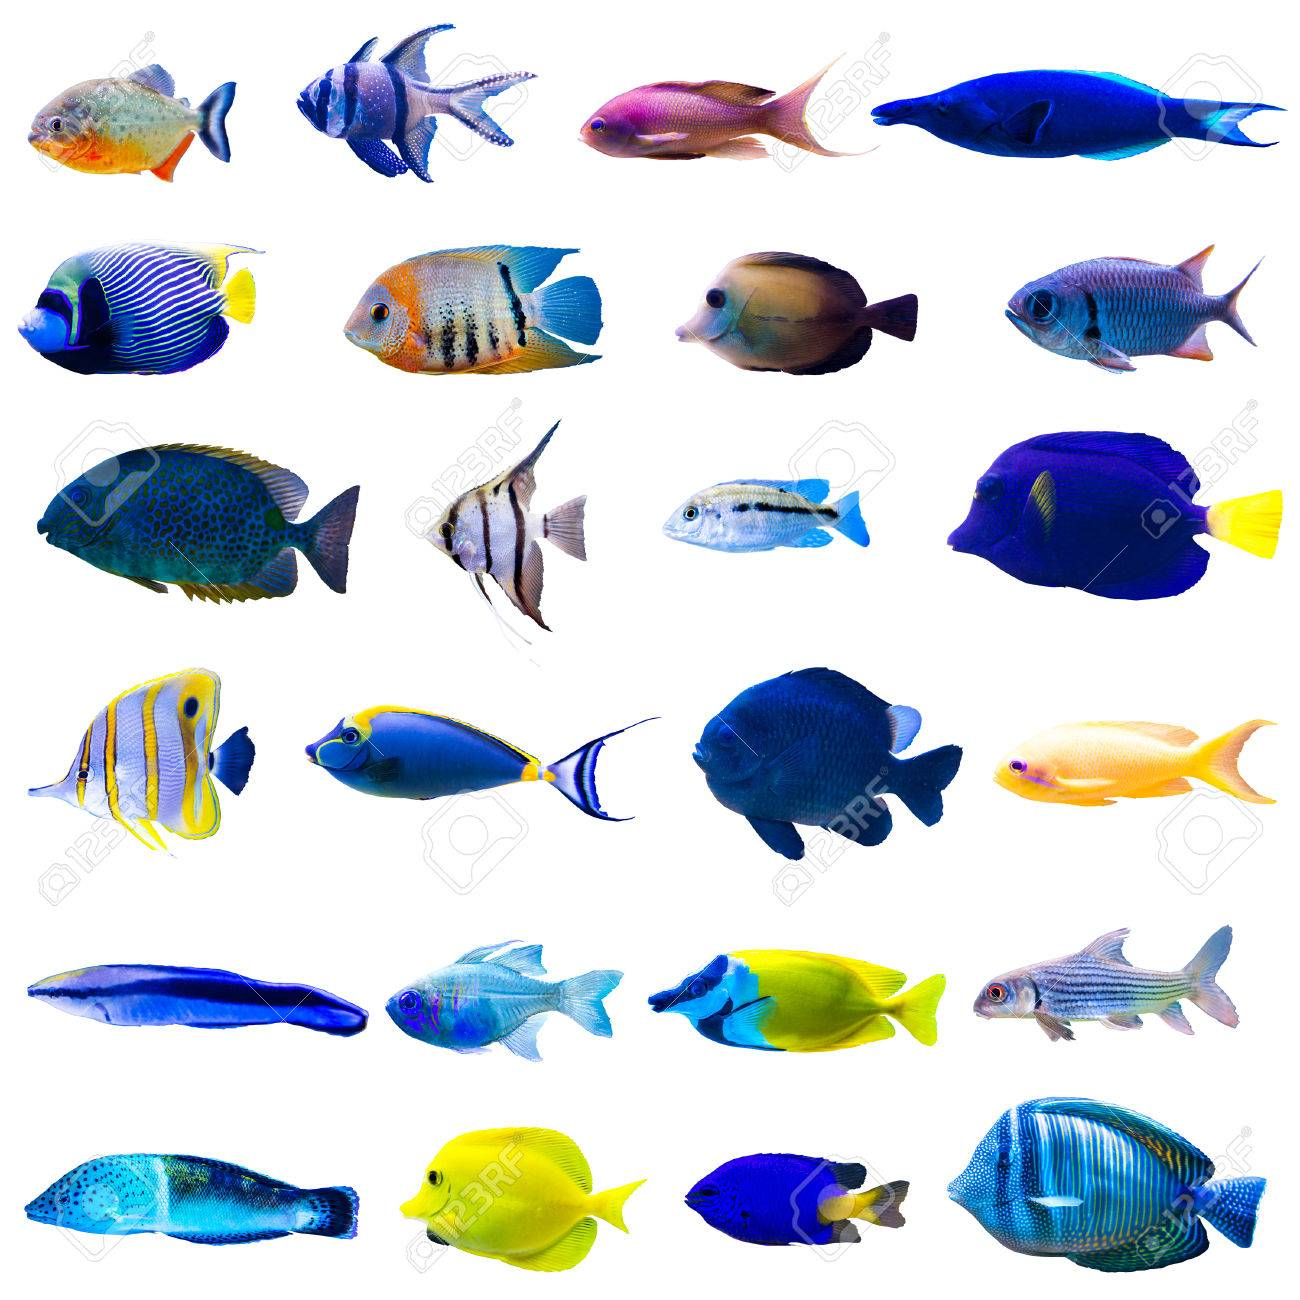 Tropical fish collection isolated on white background - 38428255